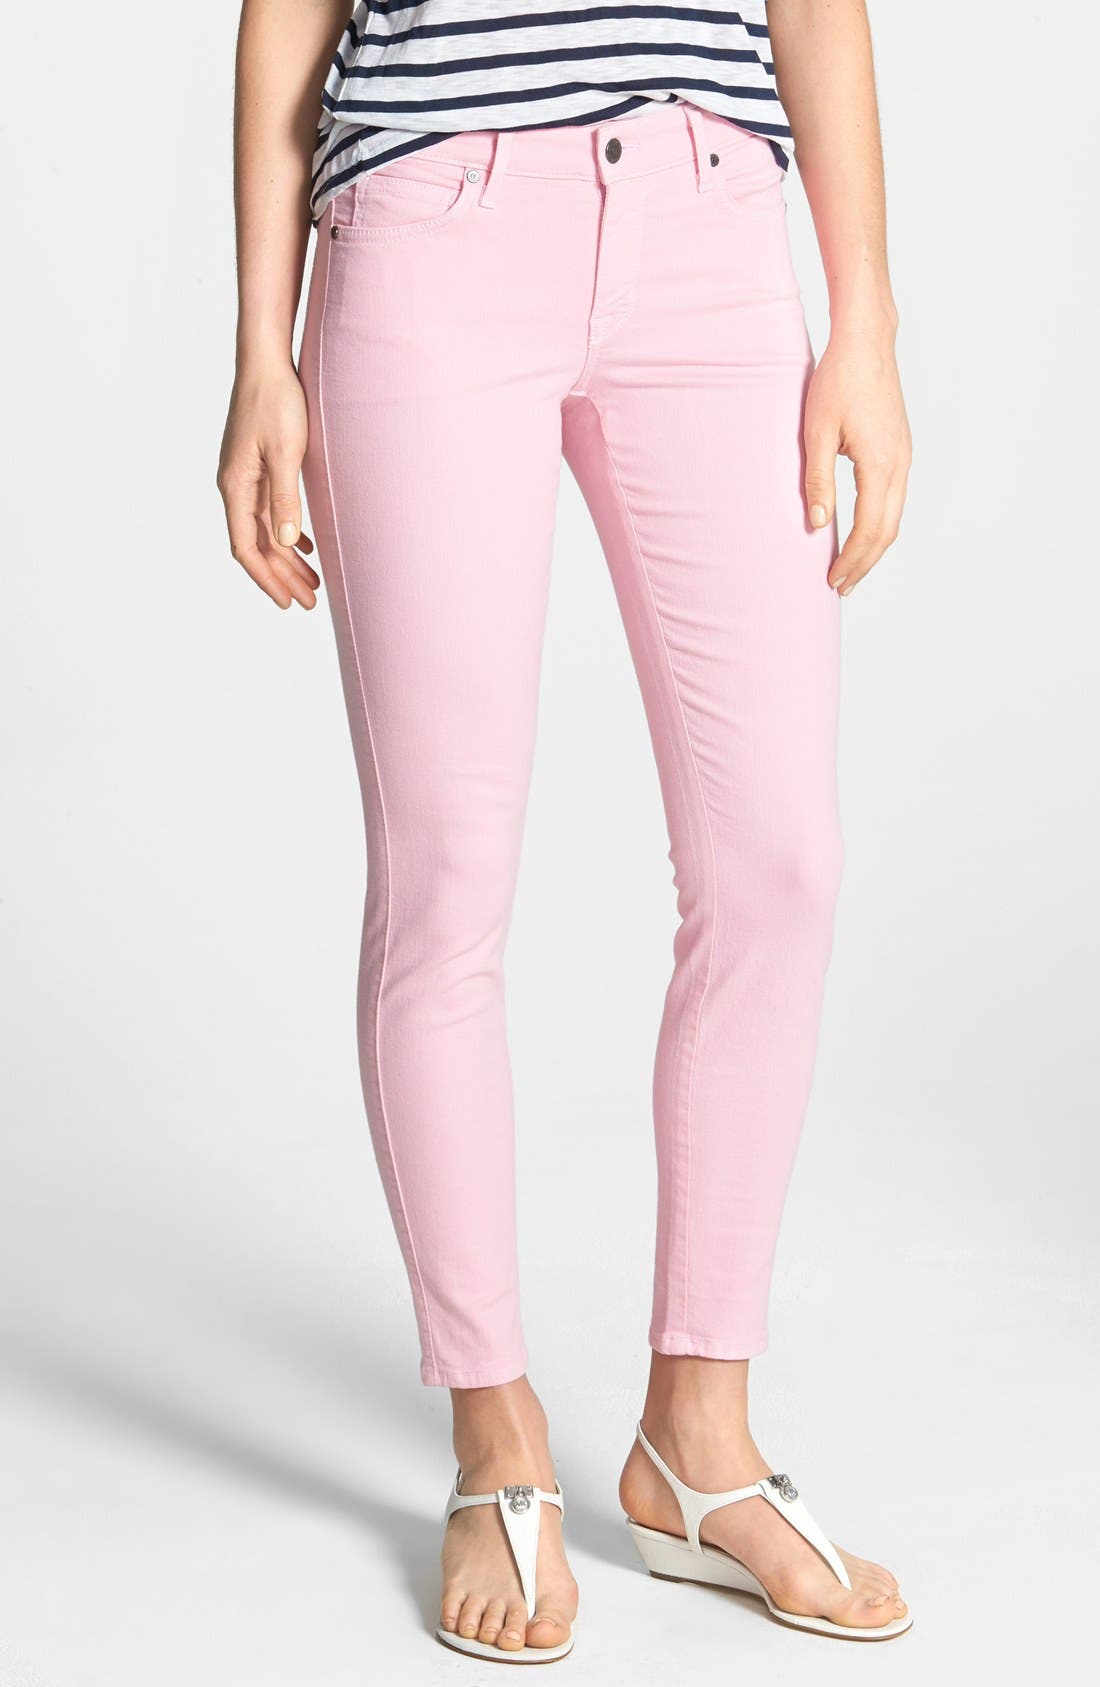 CJ BY COOKIE JOHNSON, 'Wisdom' Colored Ankle Skinny Jeans, Main thumbnail 1, color, 650